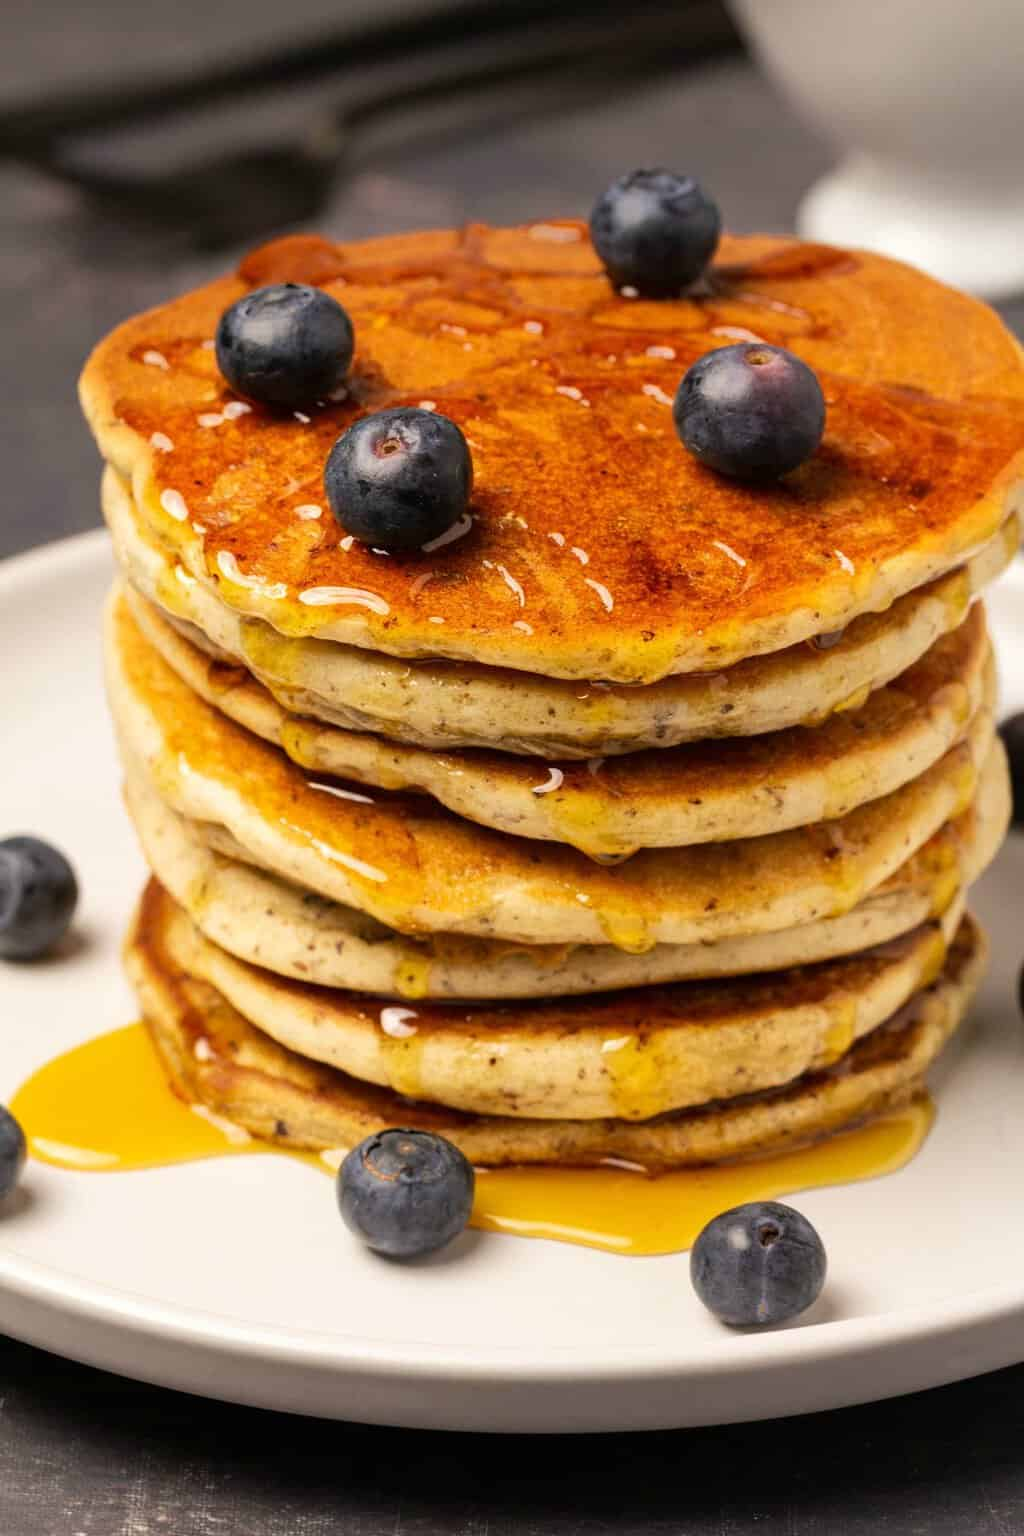 Vegan gluten free pancakes in a stack topped with syrup and fresh blueberries.